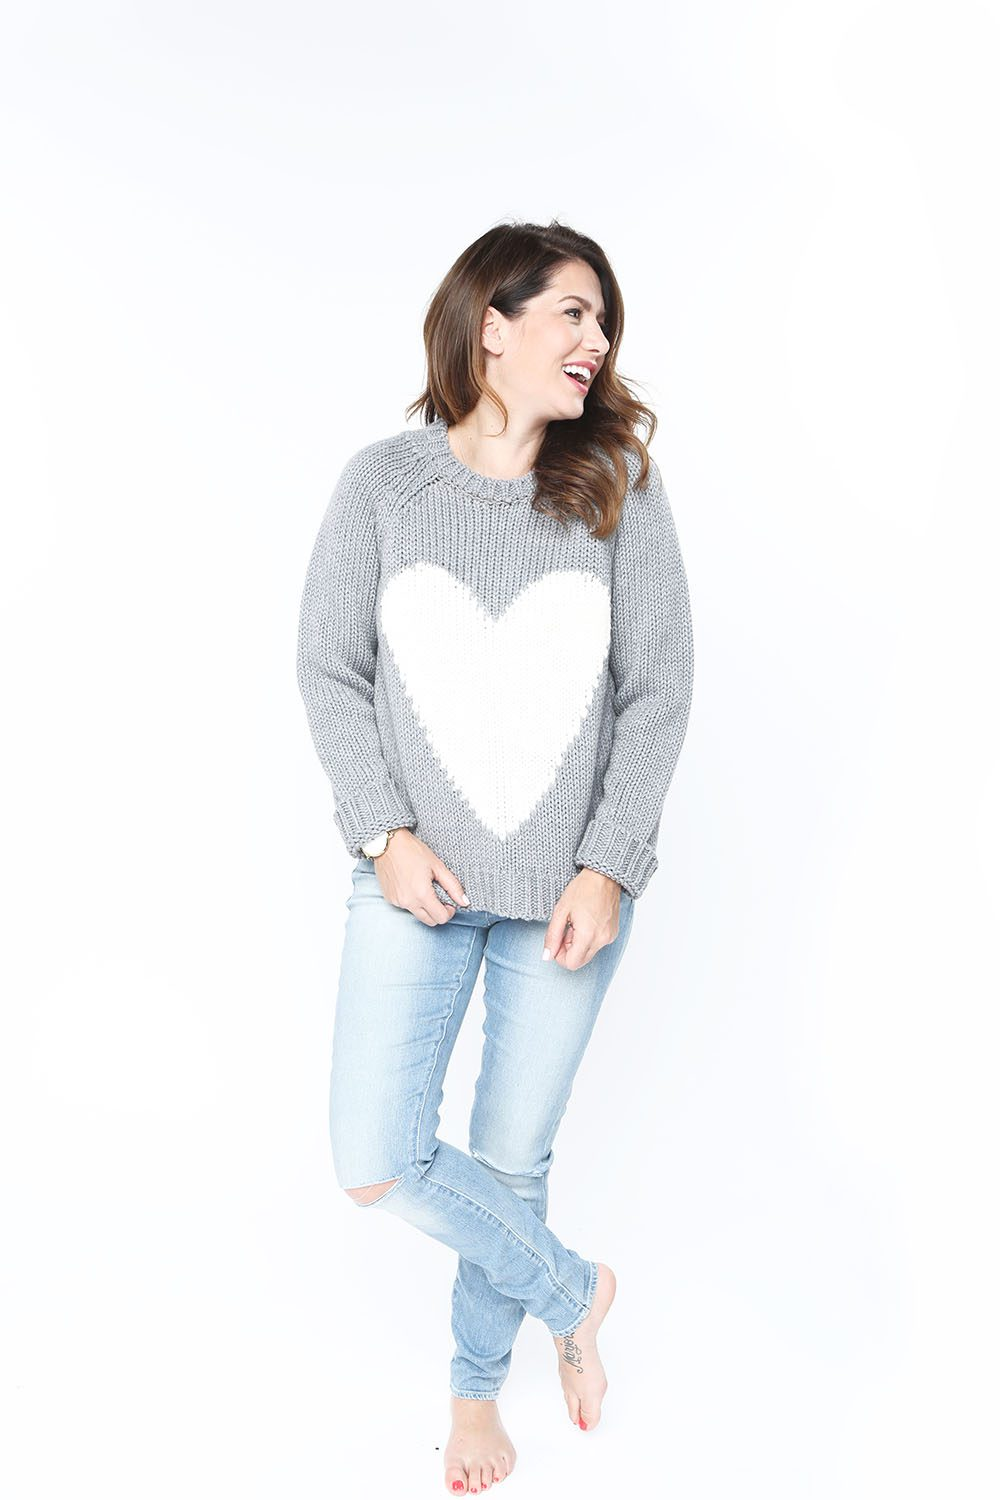 heart-knit-sweater-jh-for-priv